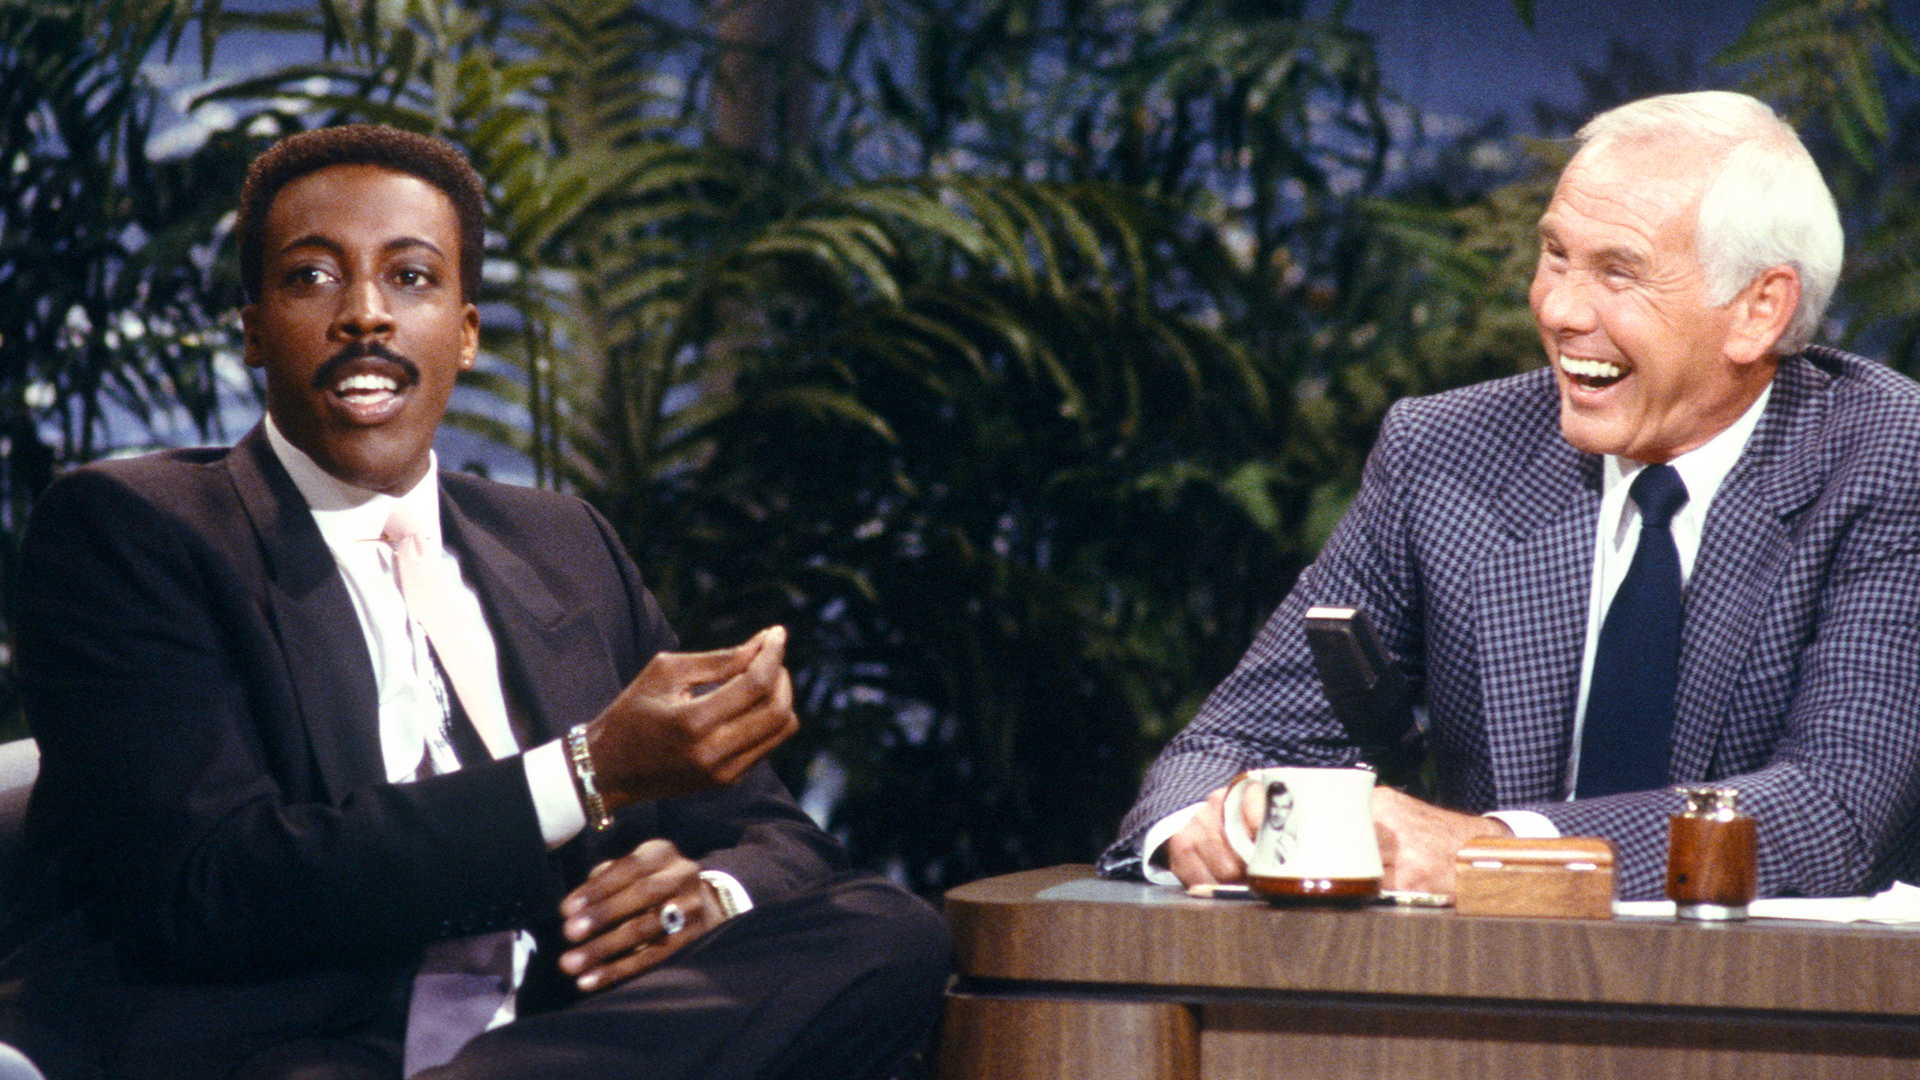 Arsenio Hall claims Johnny Carson helped book his guests despite being a rival late night host